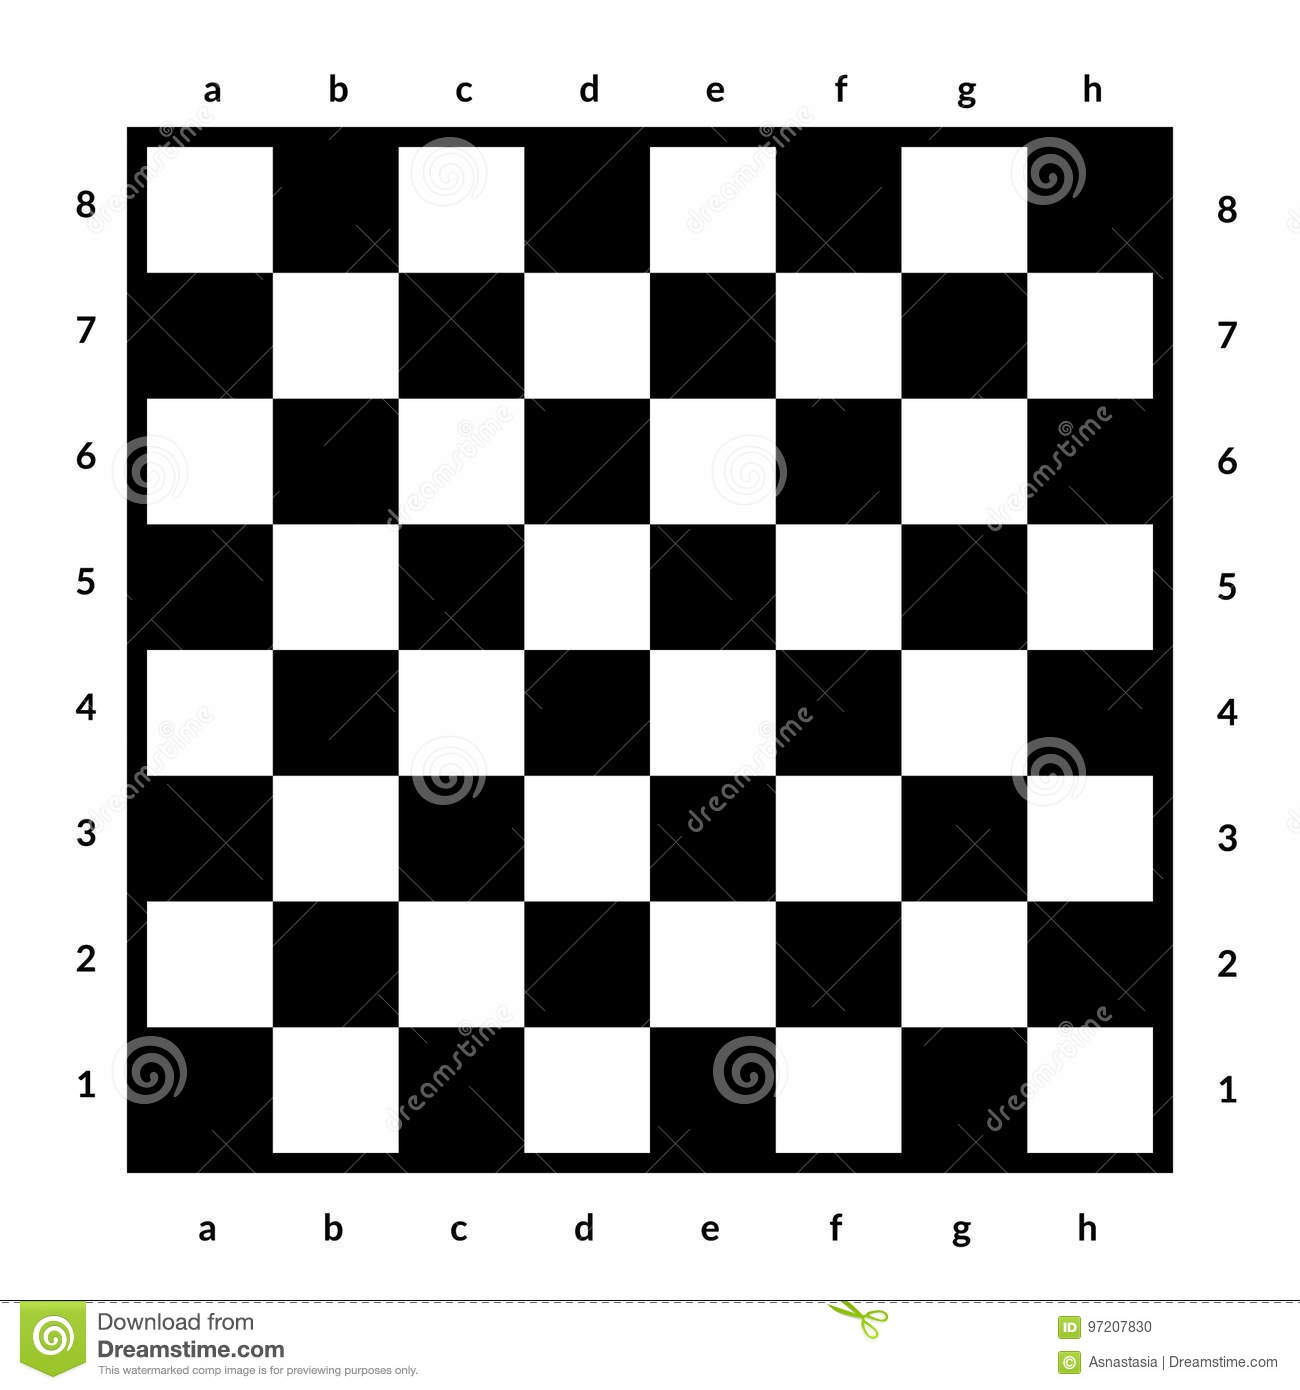 Empty chessboard isolated. Board for chess or checkers game. Strategy game concept. Checkerboard background.